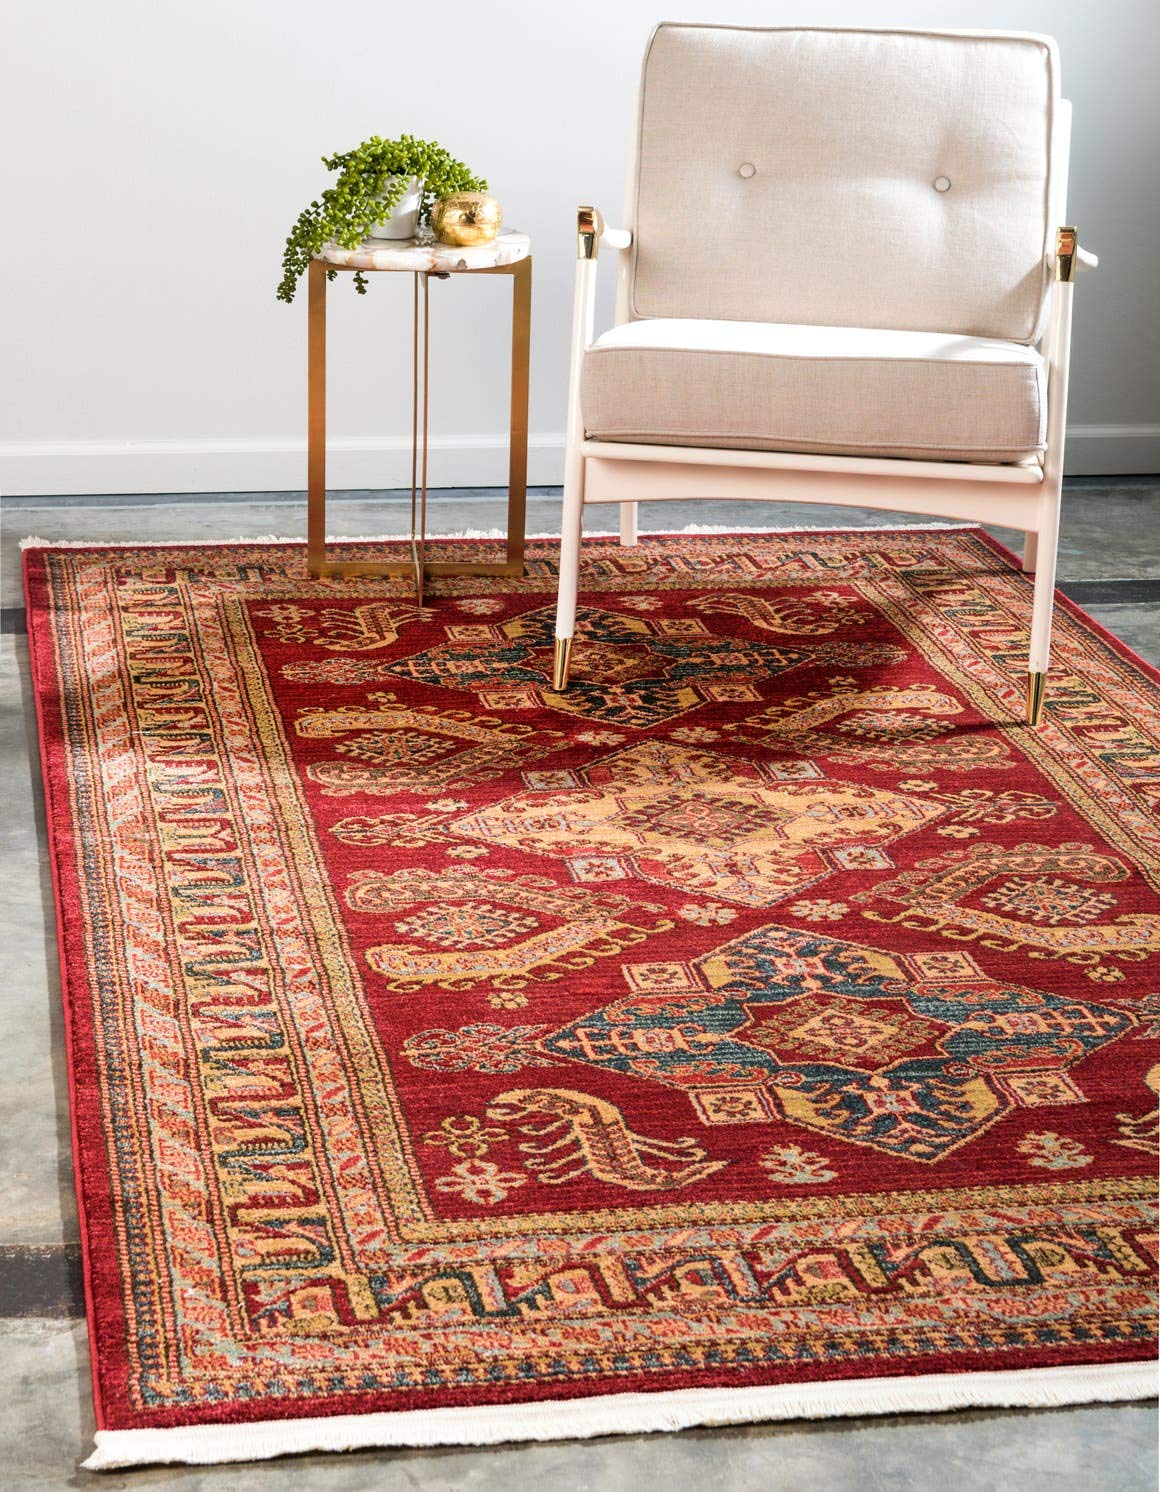 Unique Loom Sahand Collection Traditional Geometric Classic Red Area Rug 3 3 x 5 3